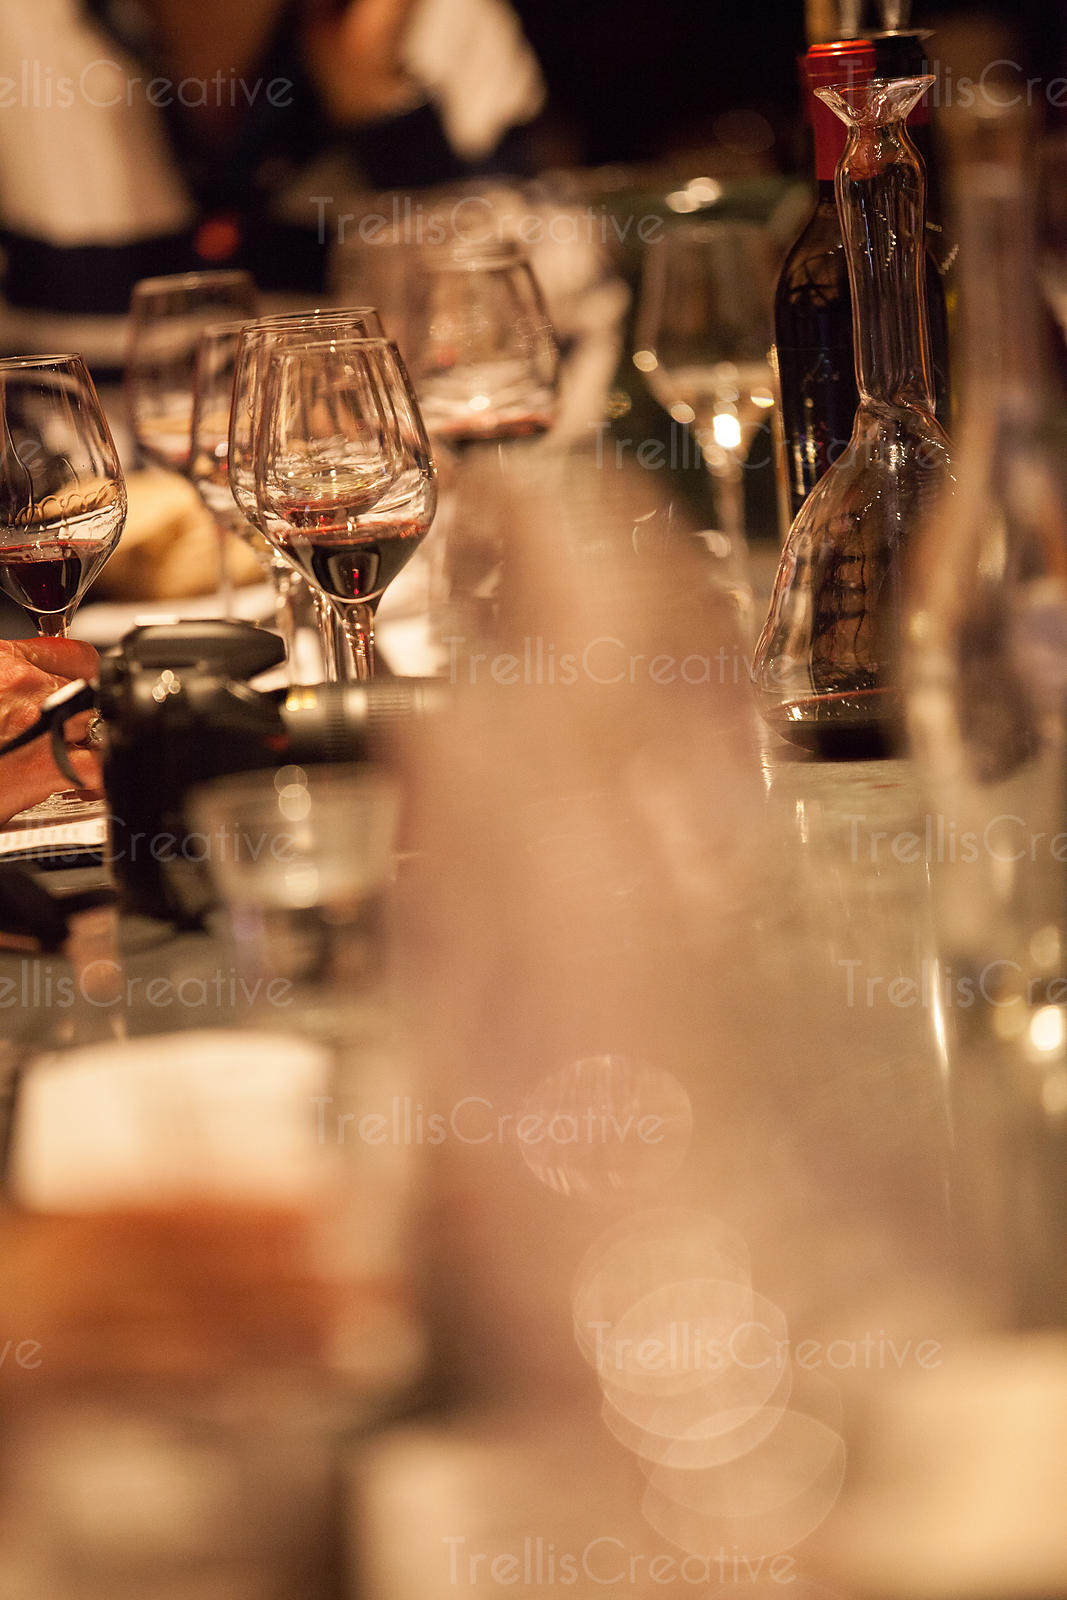 Port tasting obscured by glass in front of lens